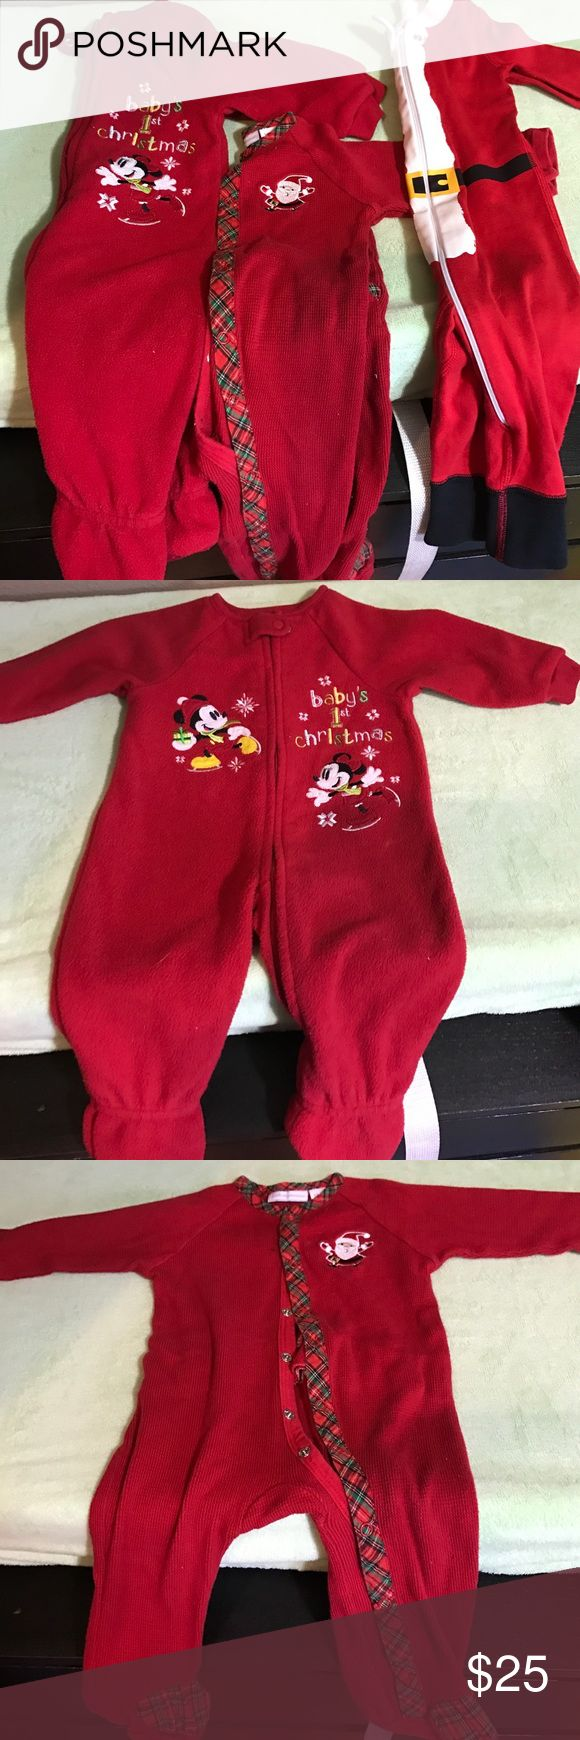 """3 Christmas Sleepers 🎄 1: Mickey and Minnie """"Baby's 1ST Christmas"""" Footie Pajamas. Disney a baby Brand. Size 3-6. It's big for a 3-6 month. It just recently stopped fitting my 9 Month old. 2: first impressions flannel santa footie pajama. Size 6-9 Month. 3:Hanna Andersson footless pajamas. """"Santa Baby"""" Size 6-9 months. All EUC and worn for a short time. Super cute. Girl or boy! Hanna Andersson One Pieces Footies"""